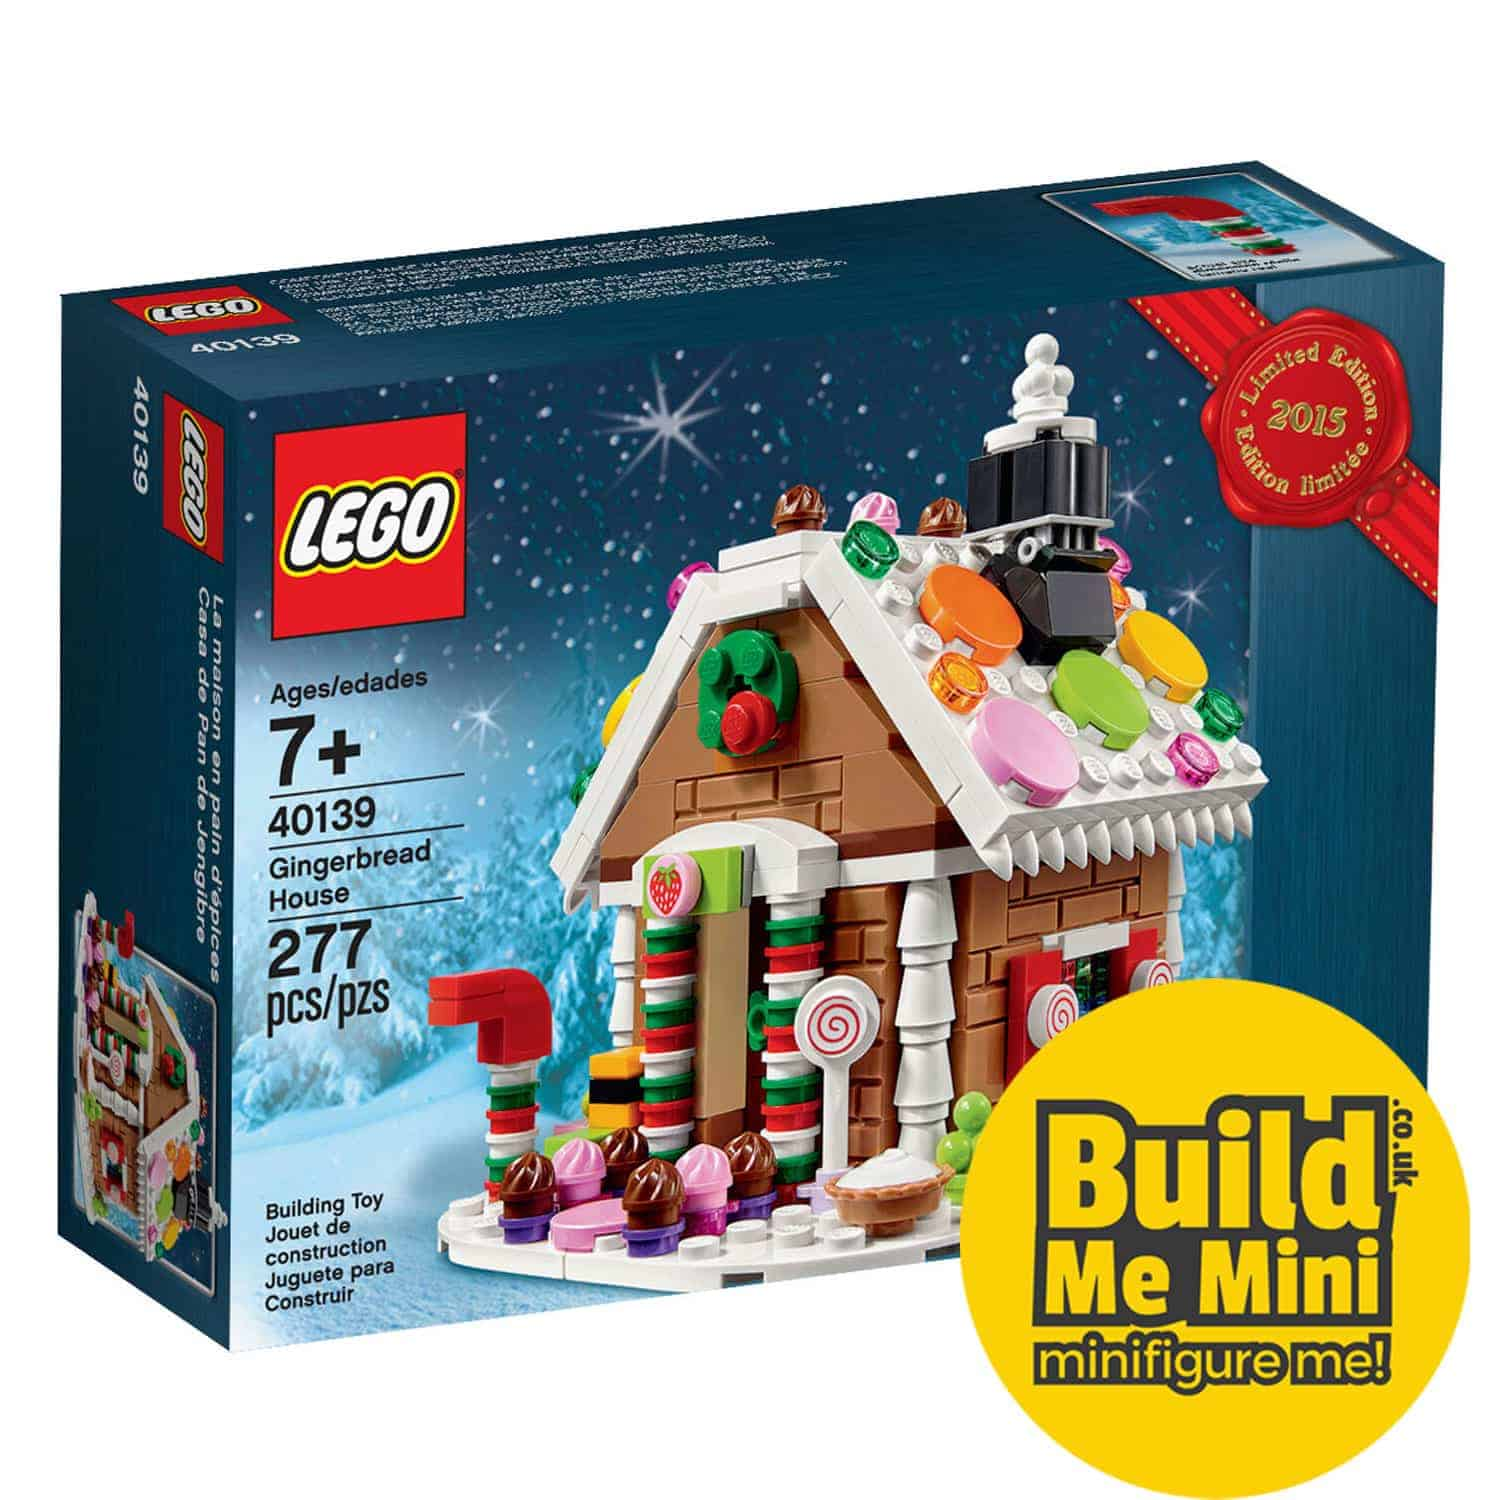 LEGO Gingerbread House 2015 Limited Edition Set 40139